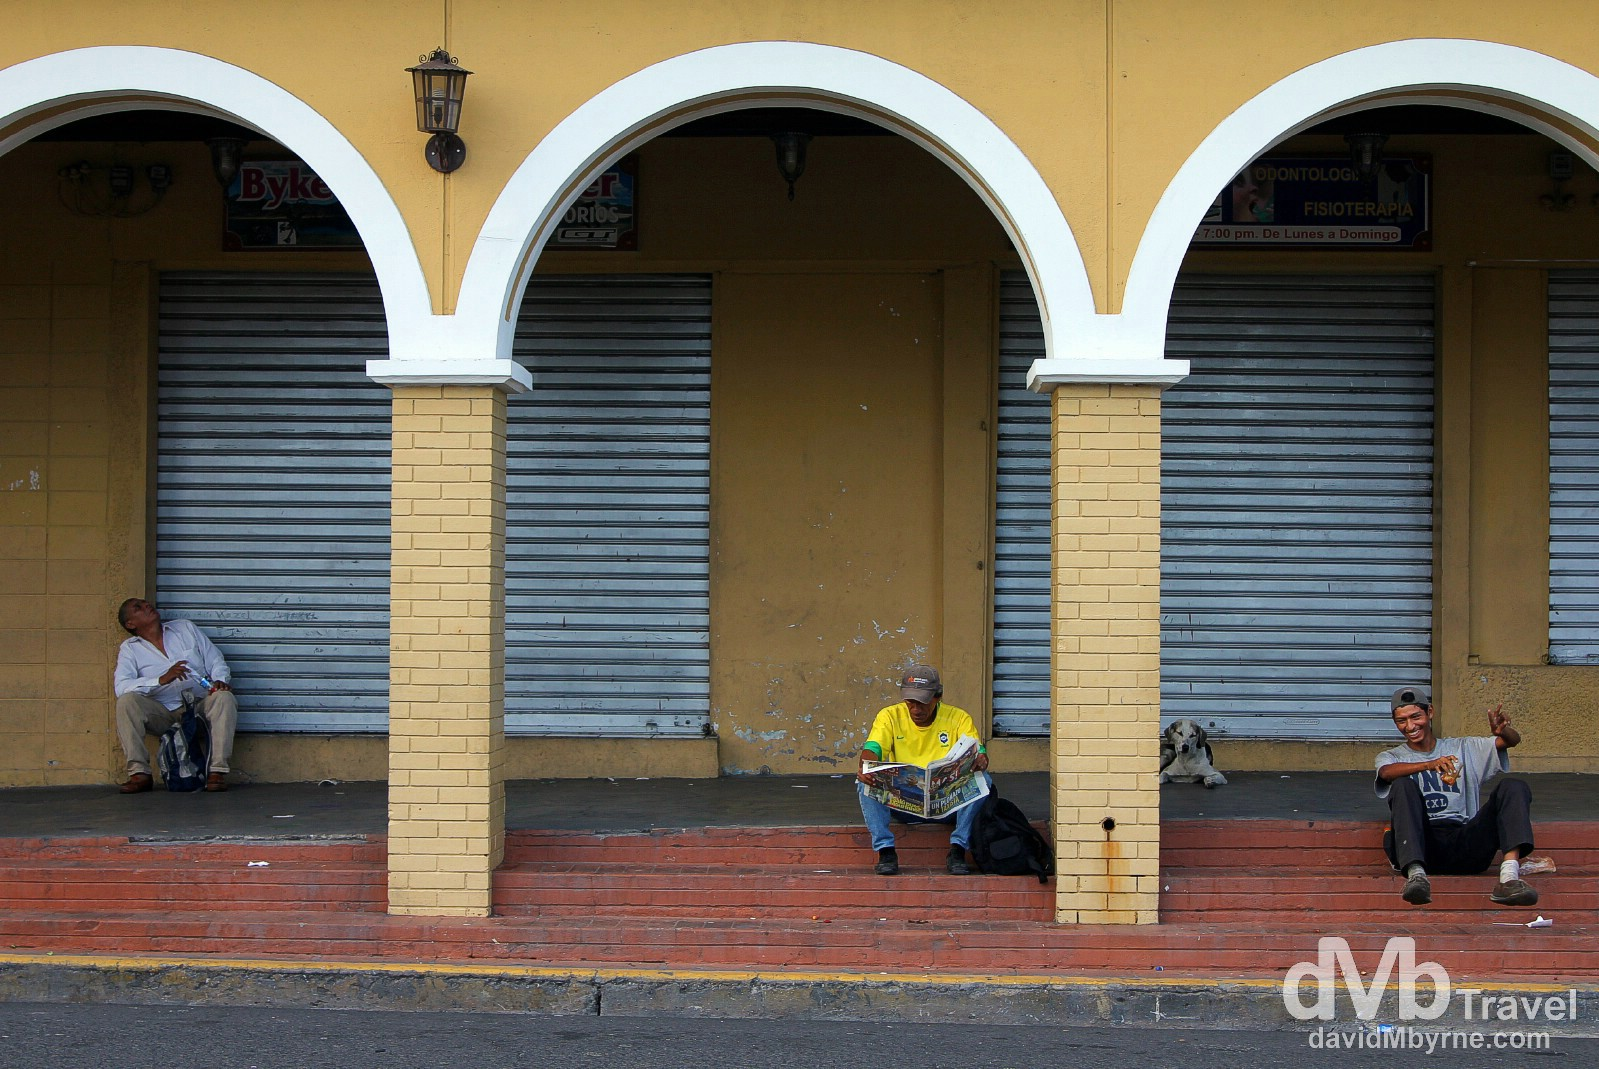 On the streets of San Salvador, El Salvador, Central America. June 3rd 2013.